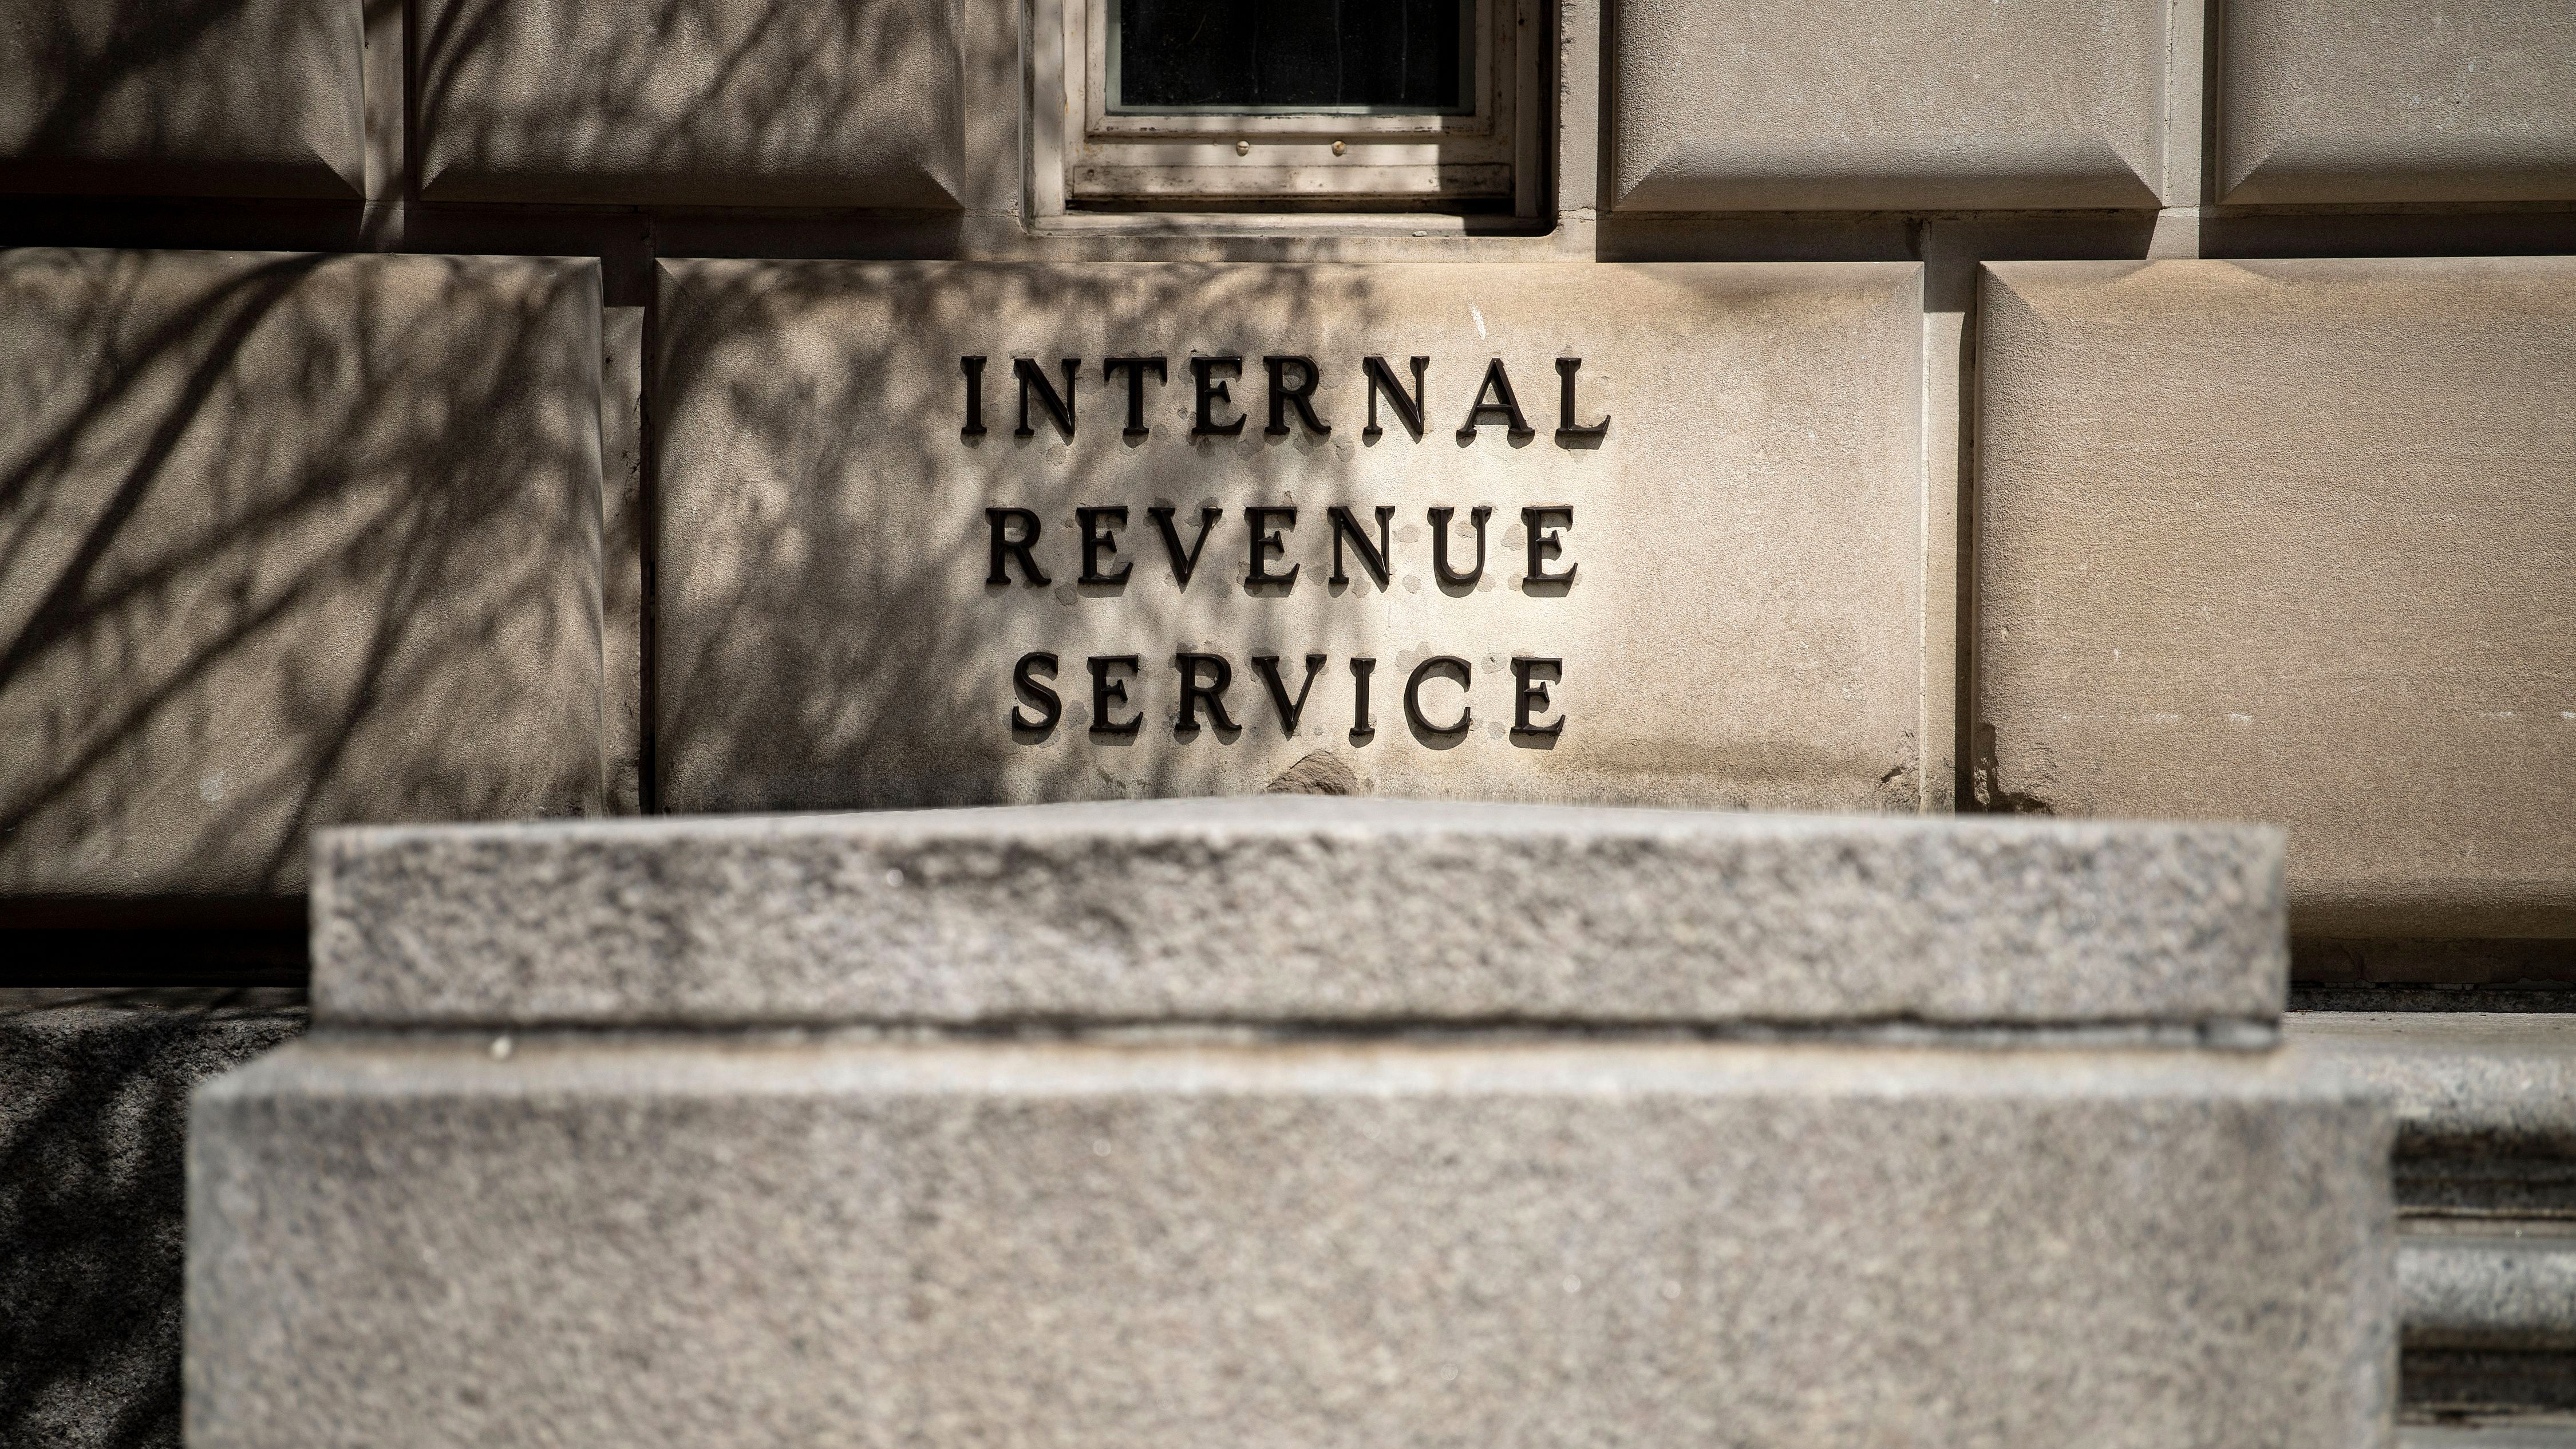 The Internal Revenue Service building in Washington on March 27, 2019.